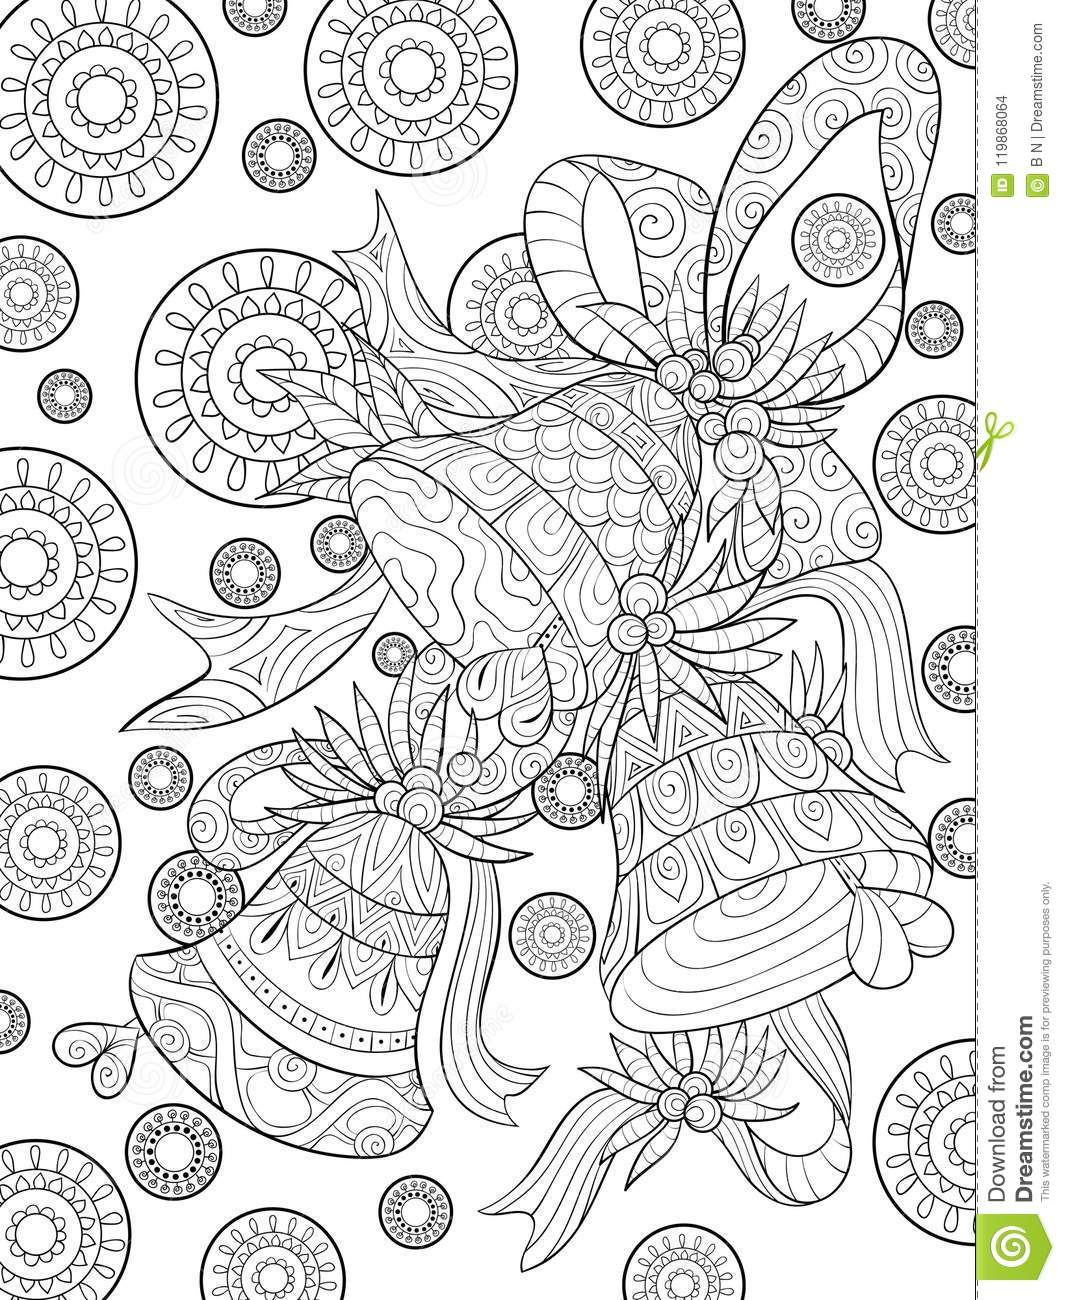 coloring pages : Disney Christmas Coloring Book Luxury Coloring ... | 1300x1065